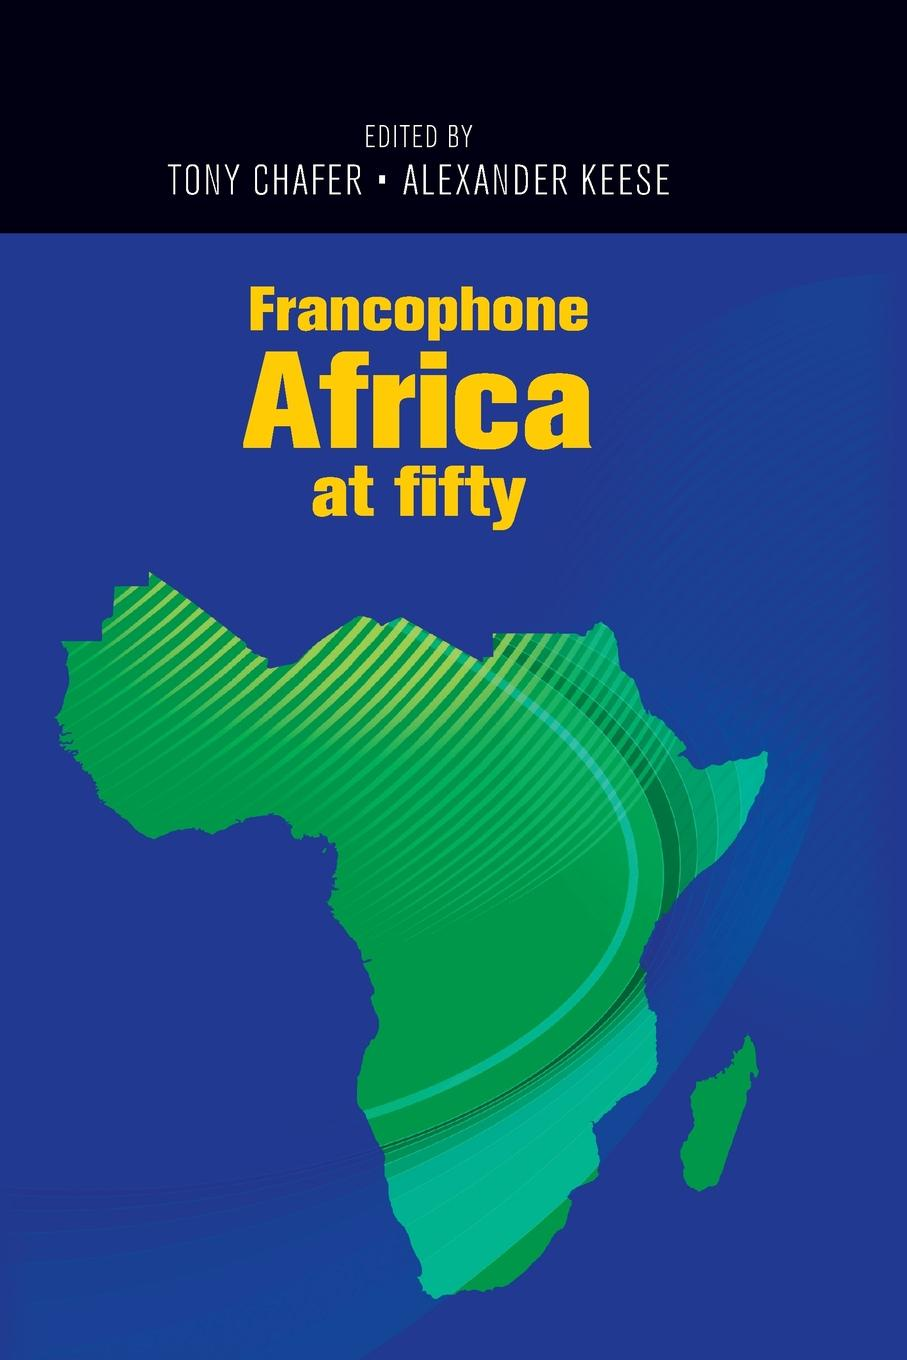 Francophone Africa at fifty.